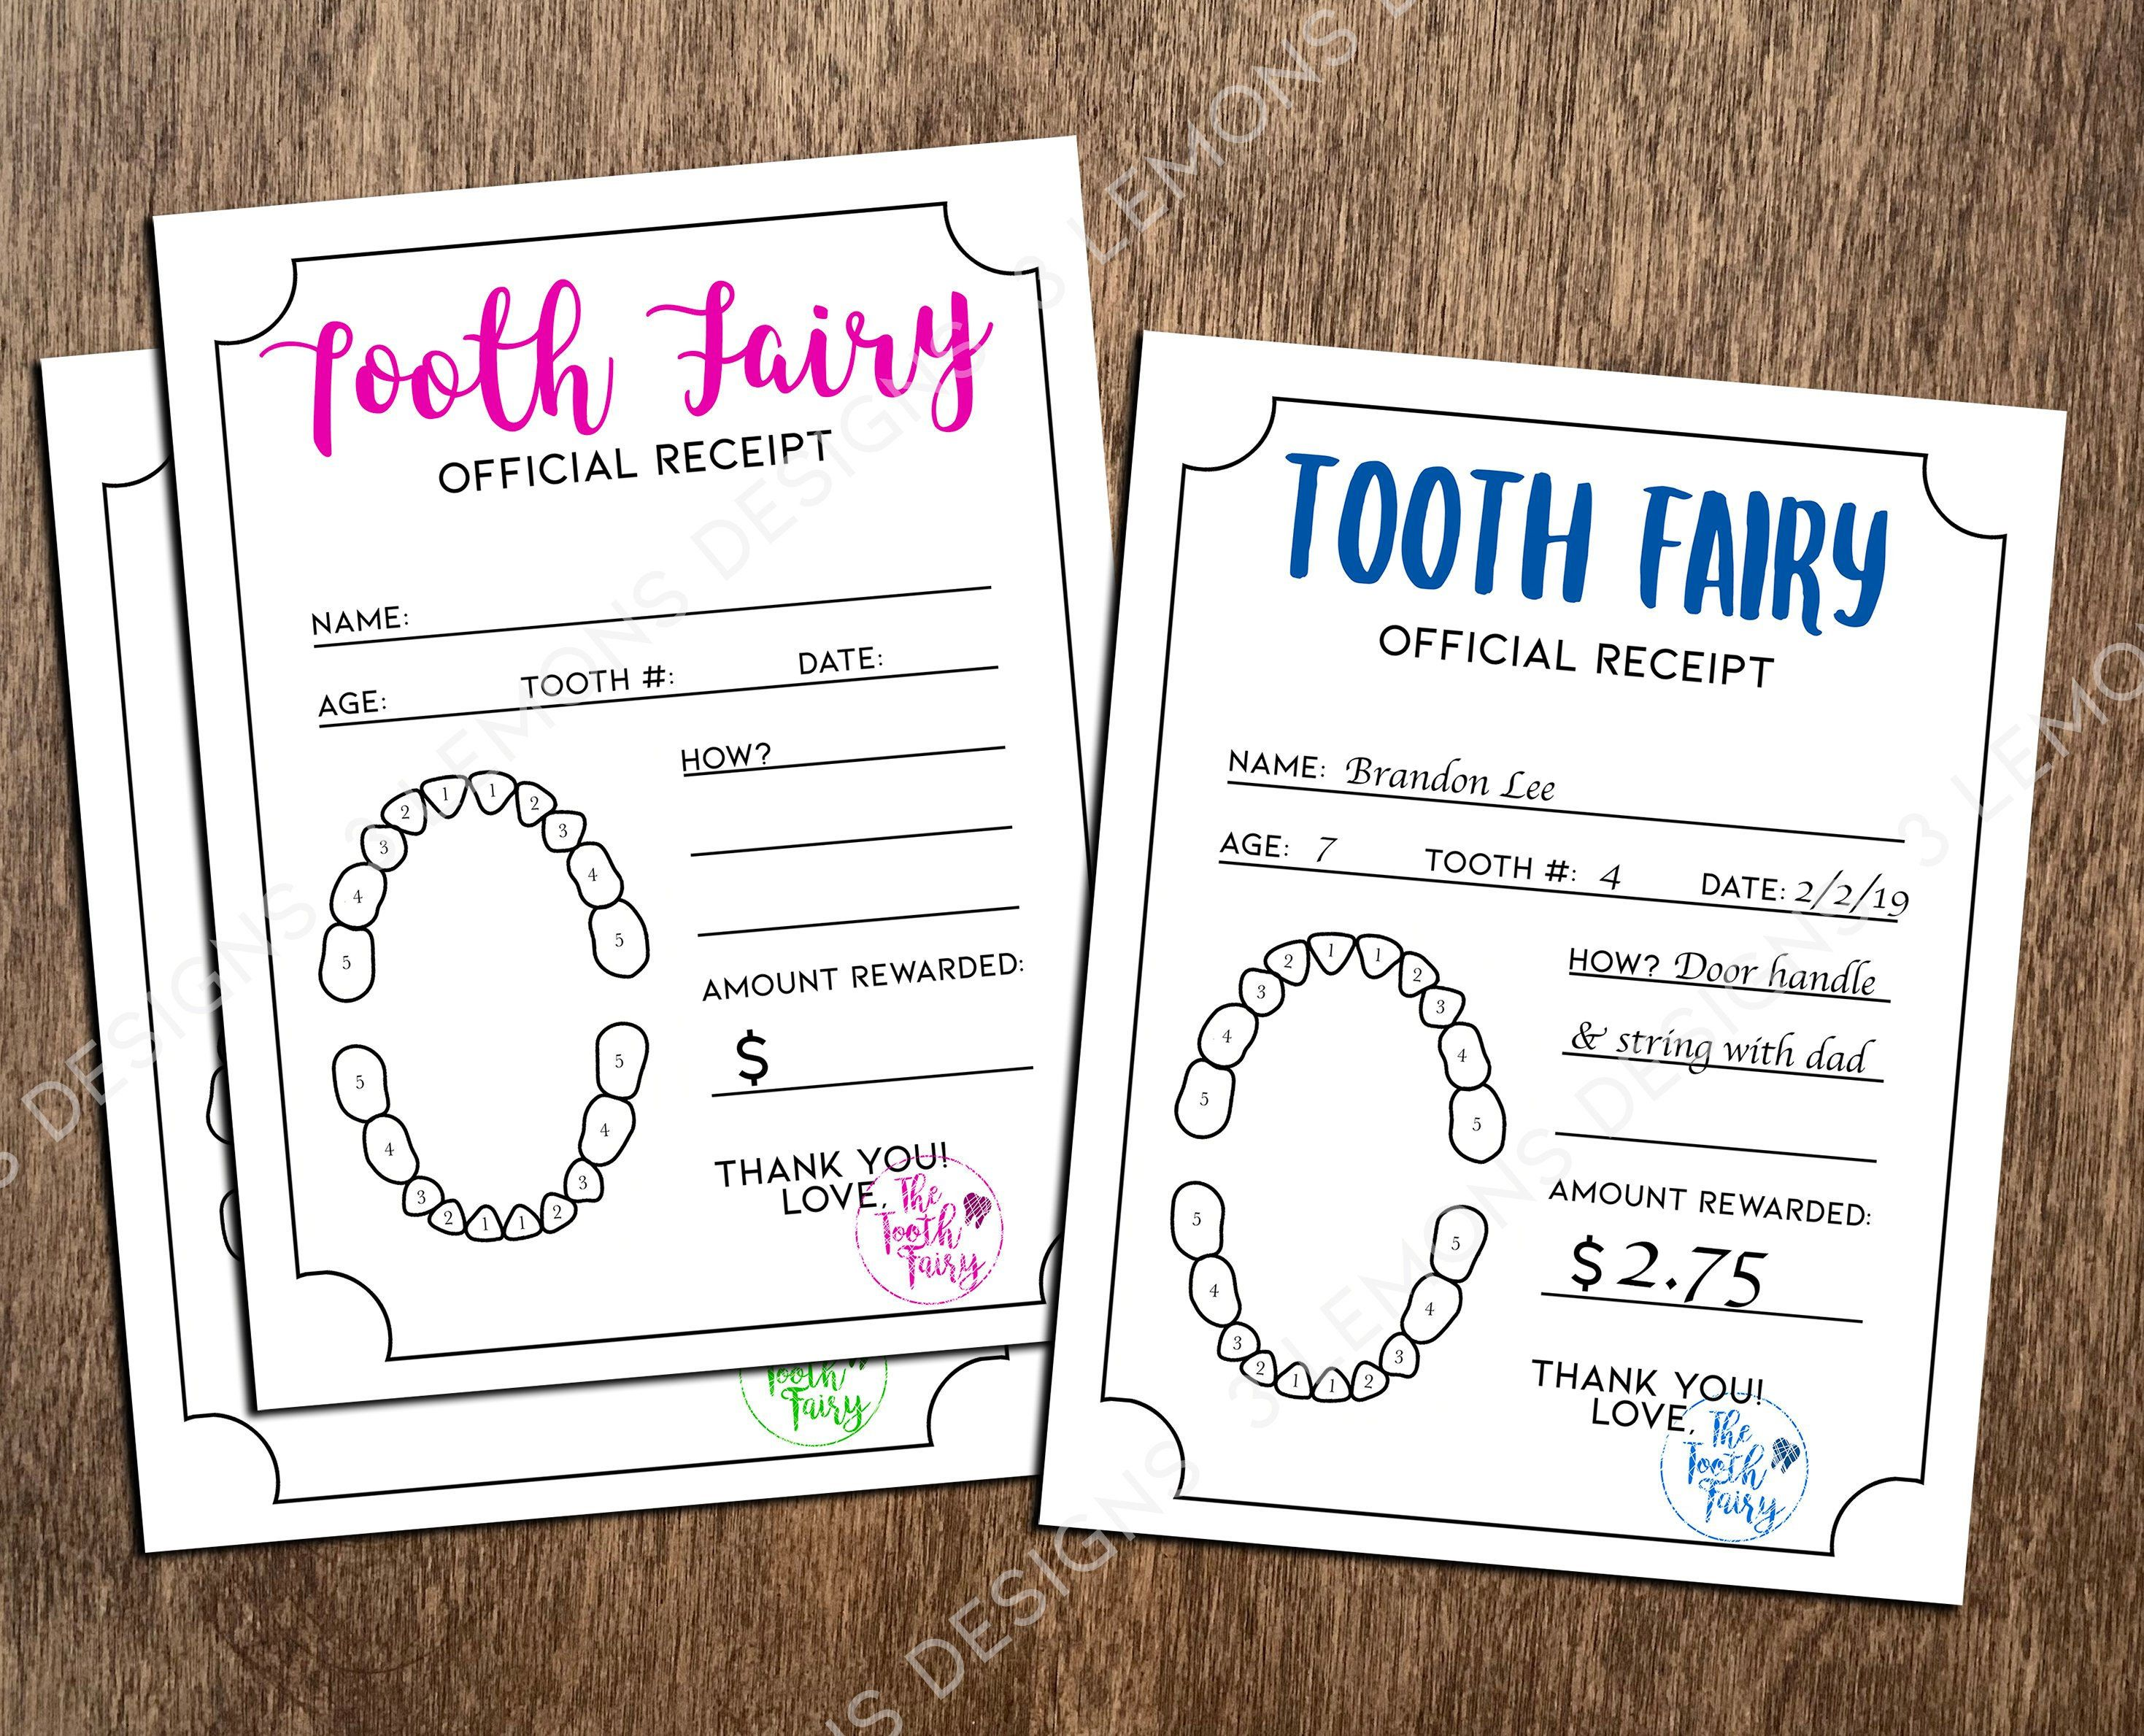 Tooth Fairy Receipt Printable Download Boys And Girls Tooth Etsy In 2021 Tooth Fairy Letter Tooth Fairy Receipt Tooth Fairy Receipt Printable